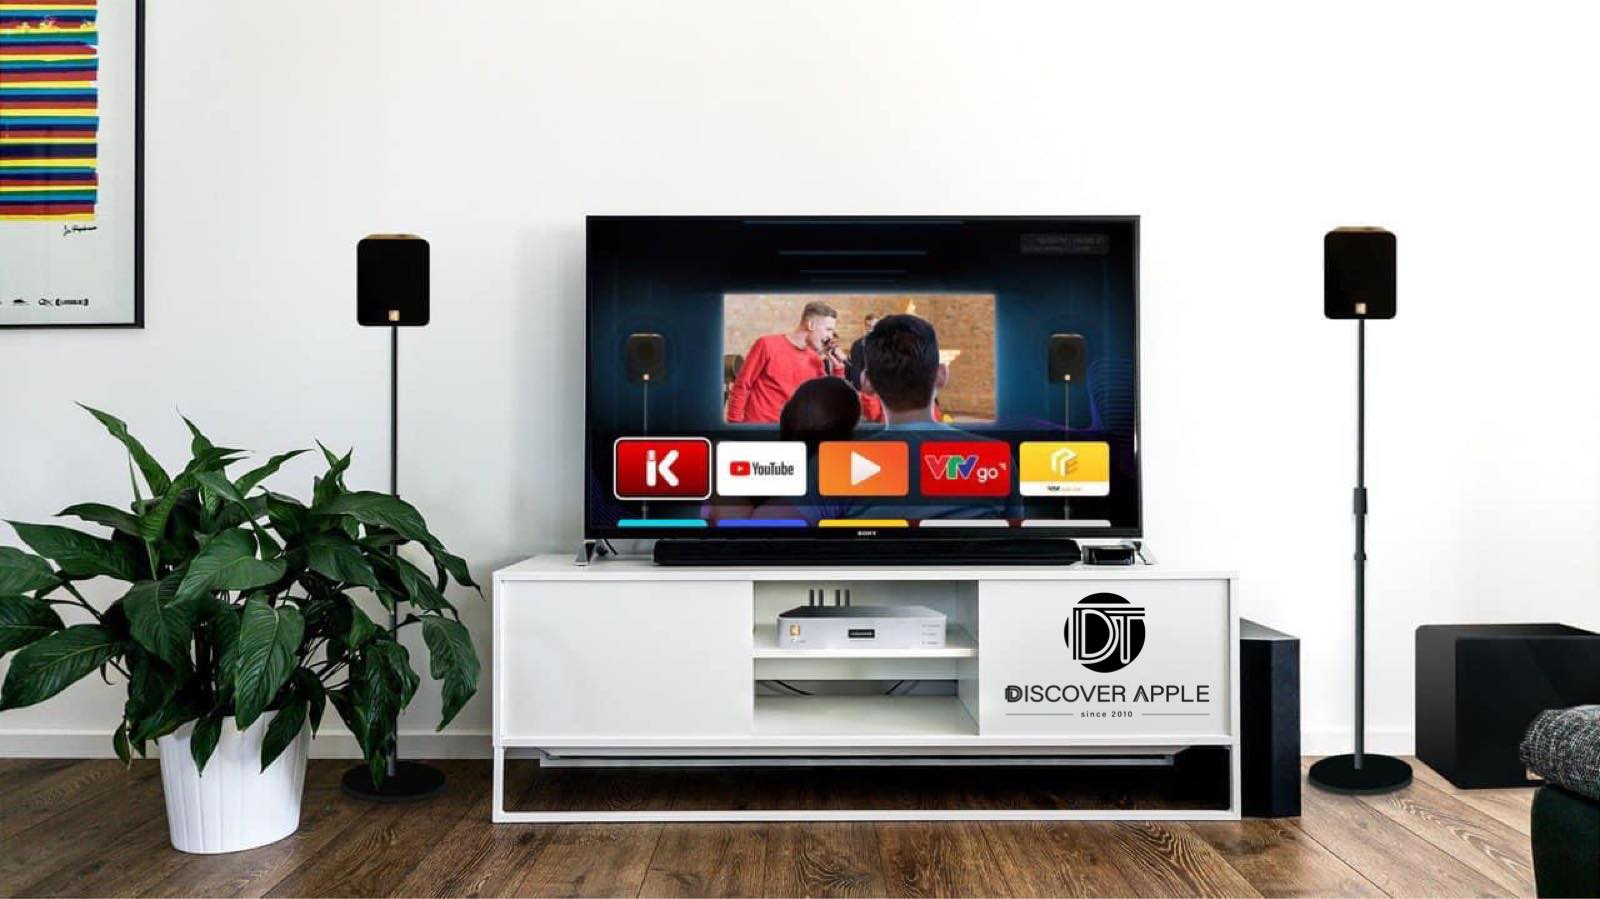 𝐊𝐚𝐫𝐚𝐡𝐨𝐦𝐞 𝟐.𝟏 Home Theater